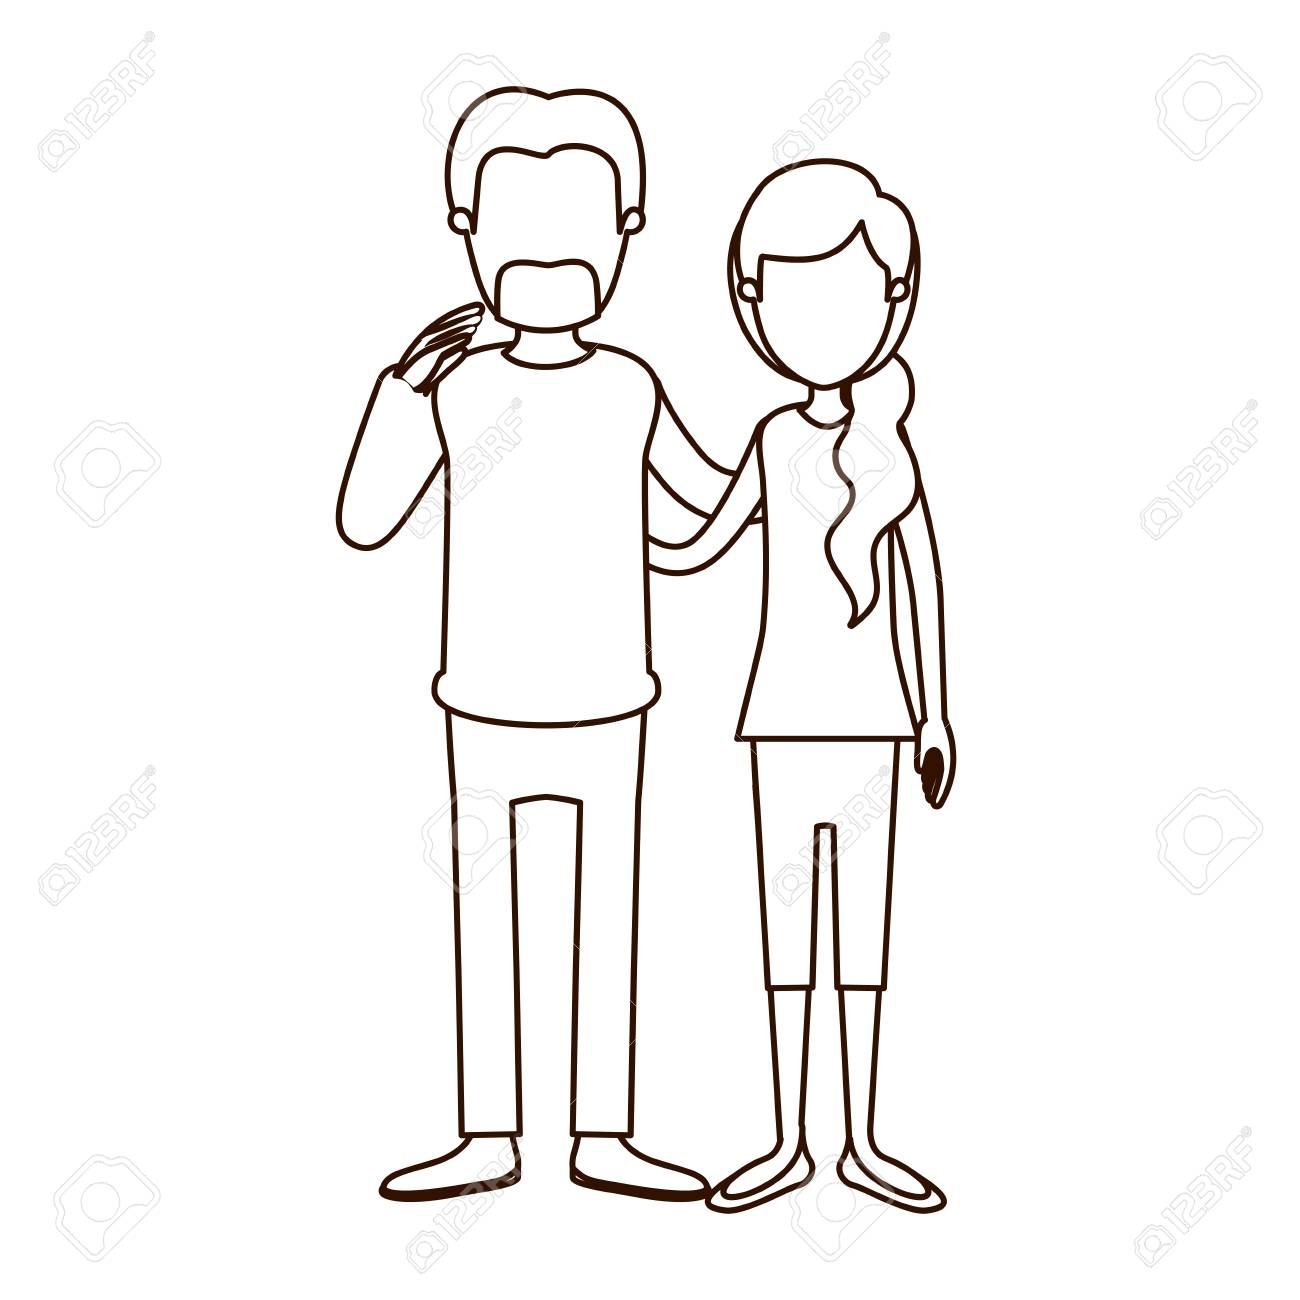 Sketch contour full body woman with ponytail side hair and man embracing couple vector illustration stock